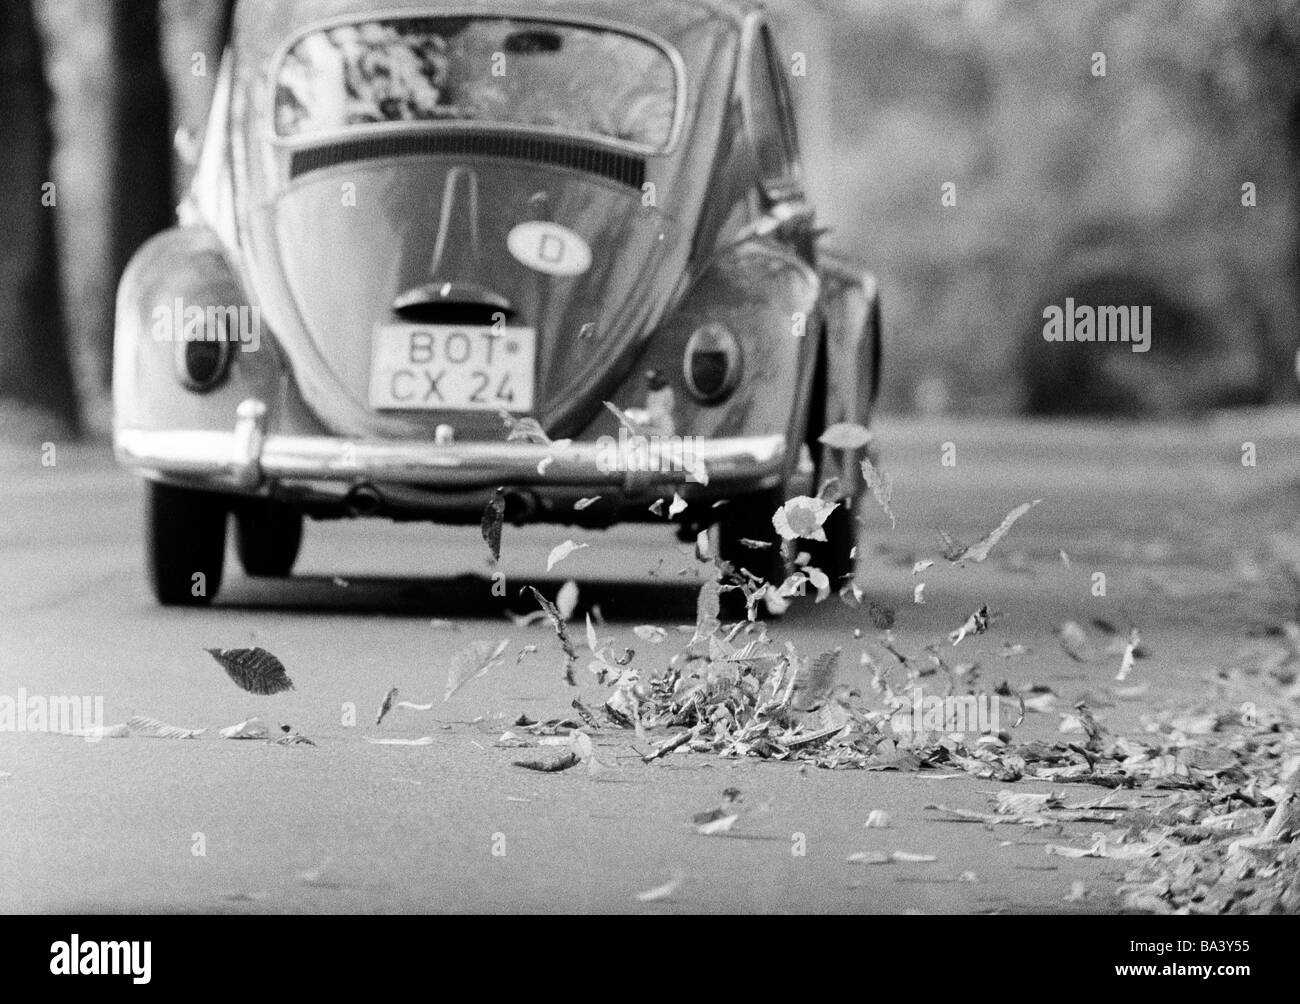 Seventies, black and white photo, autumn, autumn leaves on the street swirled up by a passing motorcar, VW-Beetle, - Stock Image